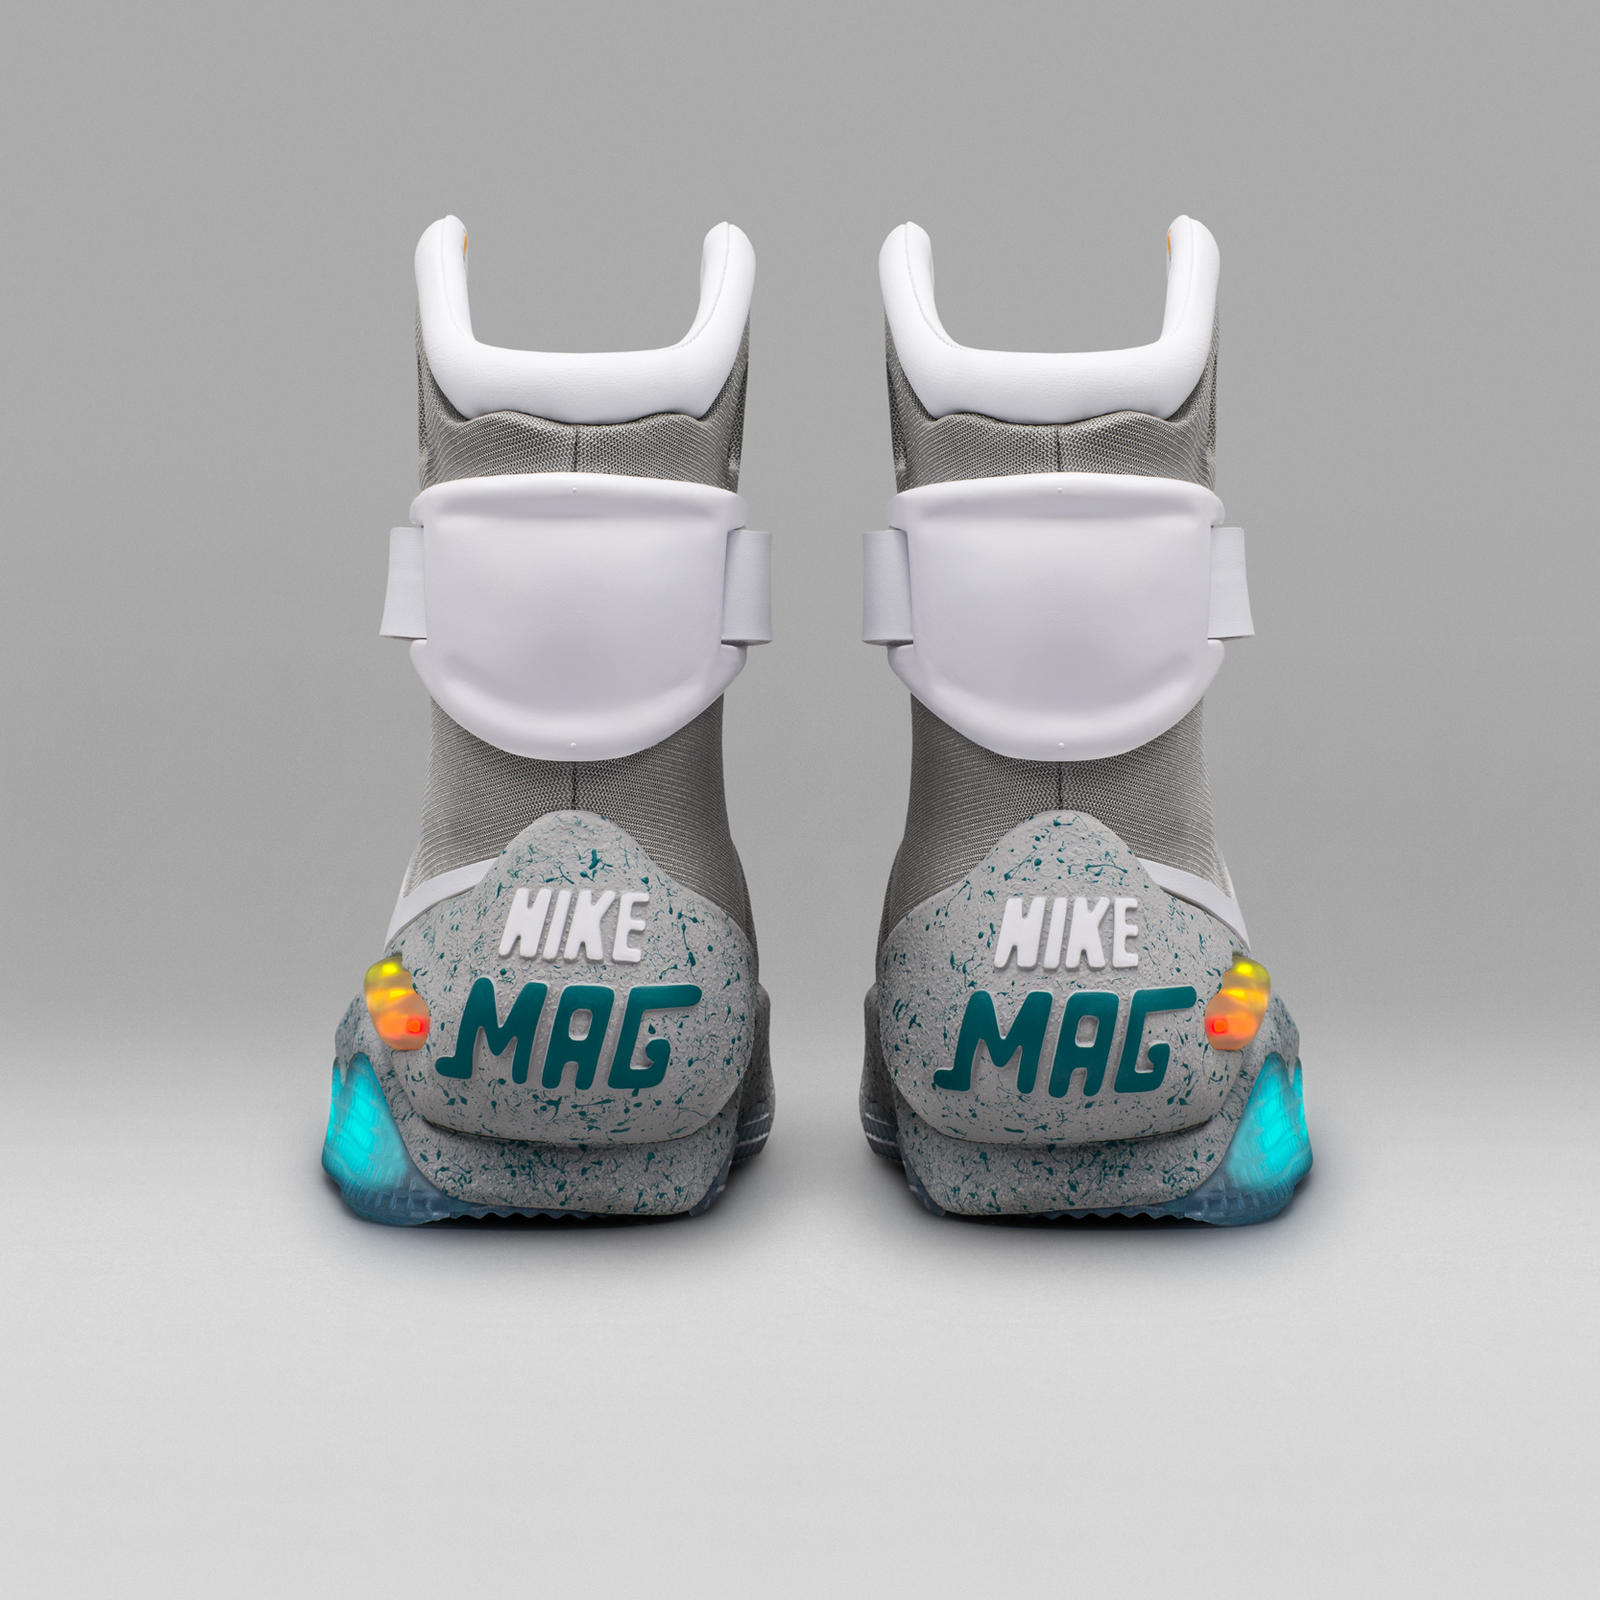 low priced 0b4f2 461b5 Nike Mag 'Back to the Future Part II' Shoes: How to Get Them ...